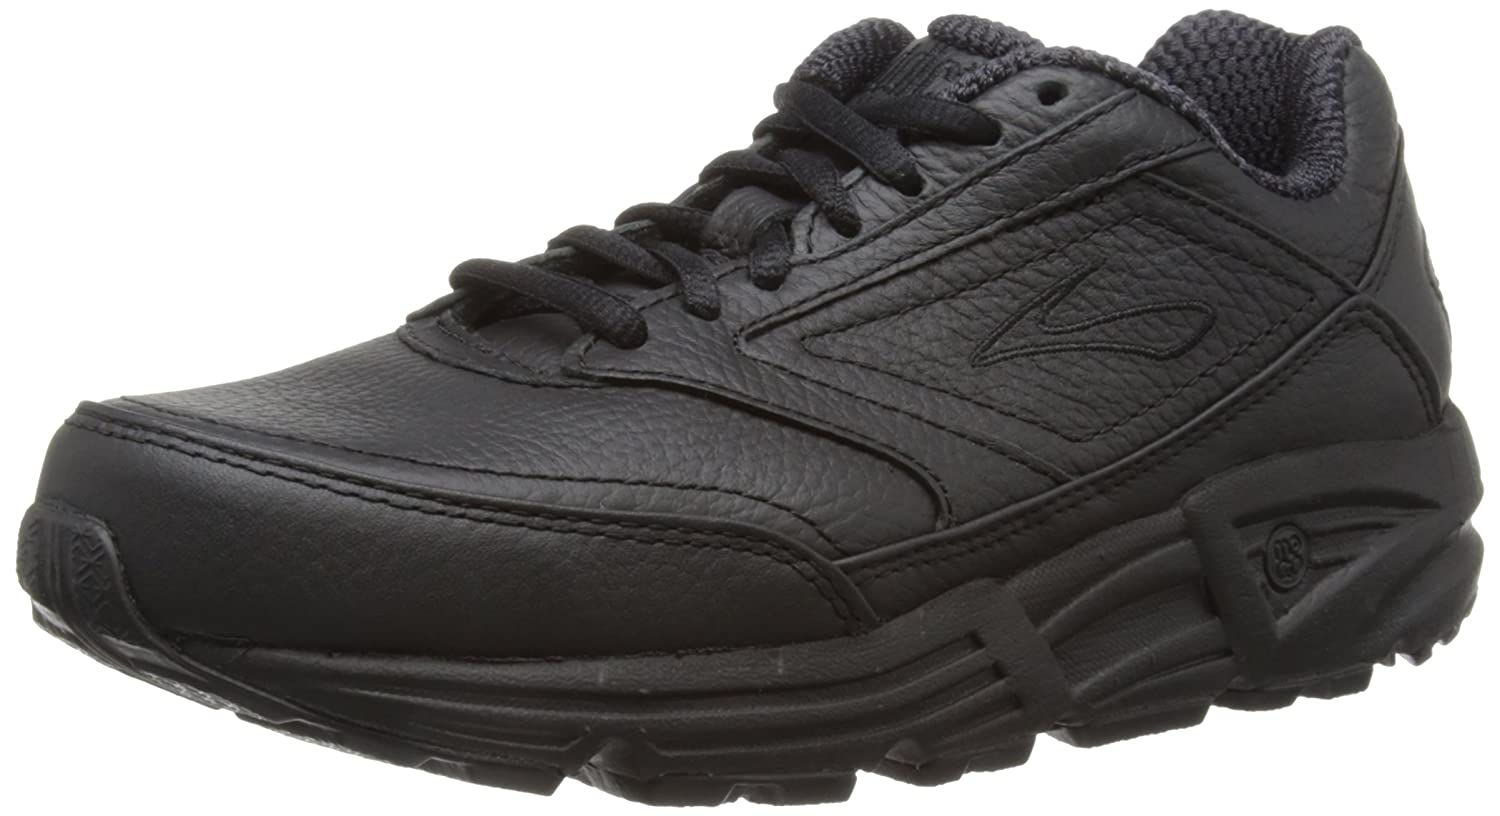 Brooks Women's Addiction Walker Walking Shoes B0012IJX0M 9.5 B(M) US|Black